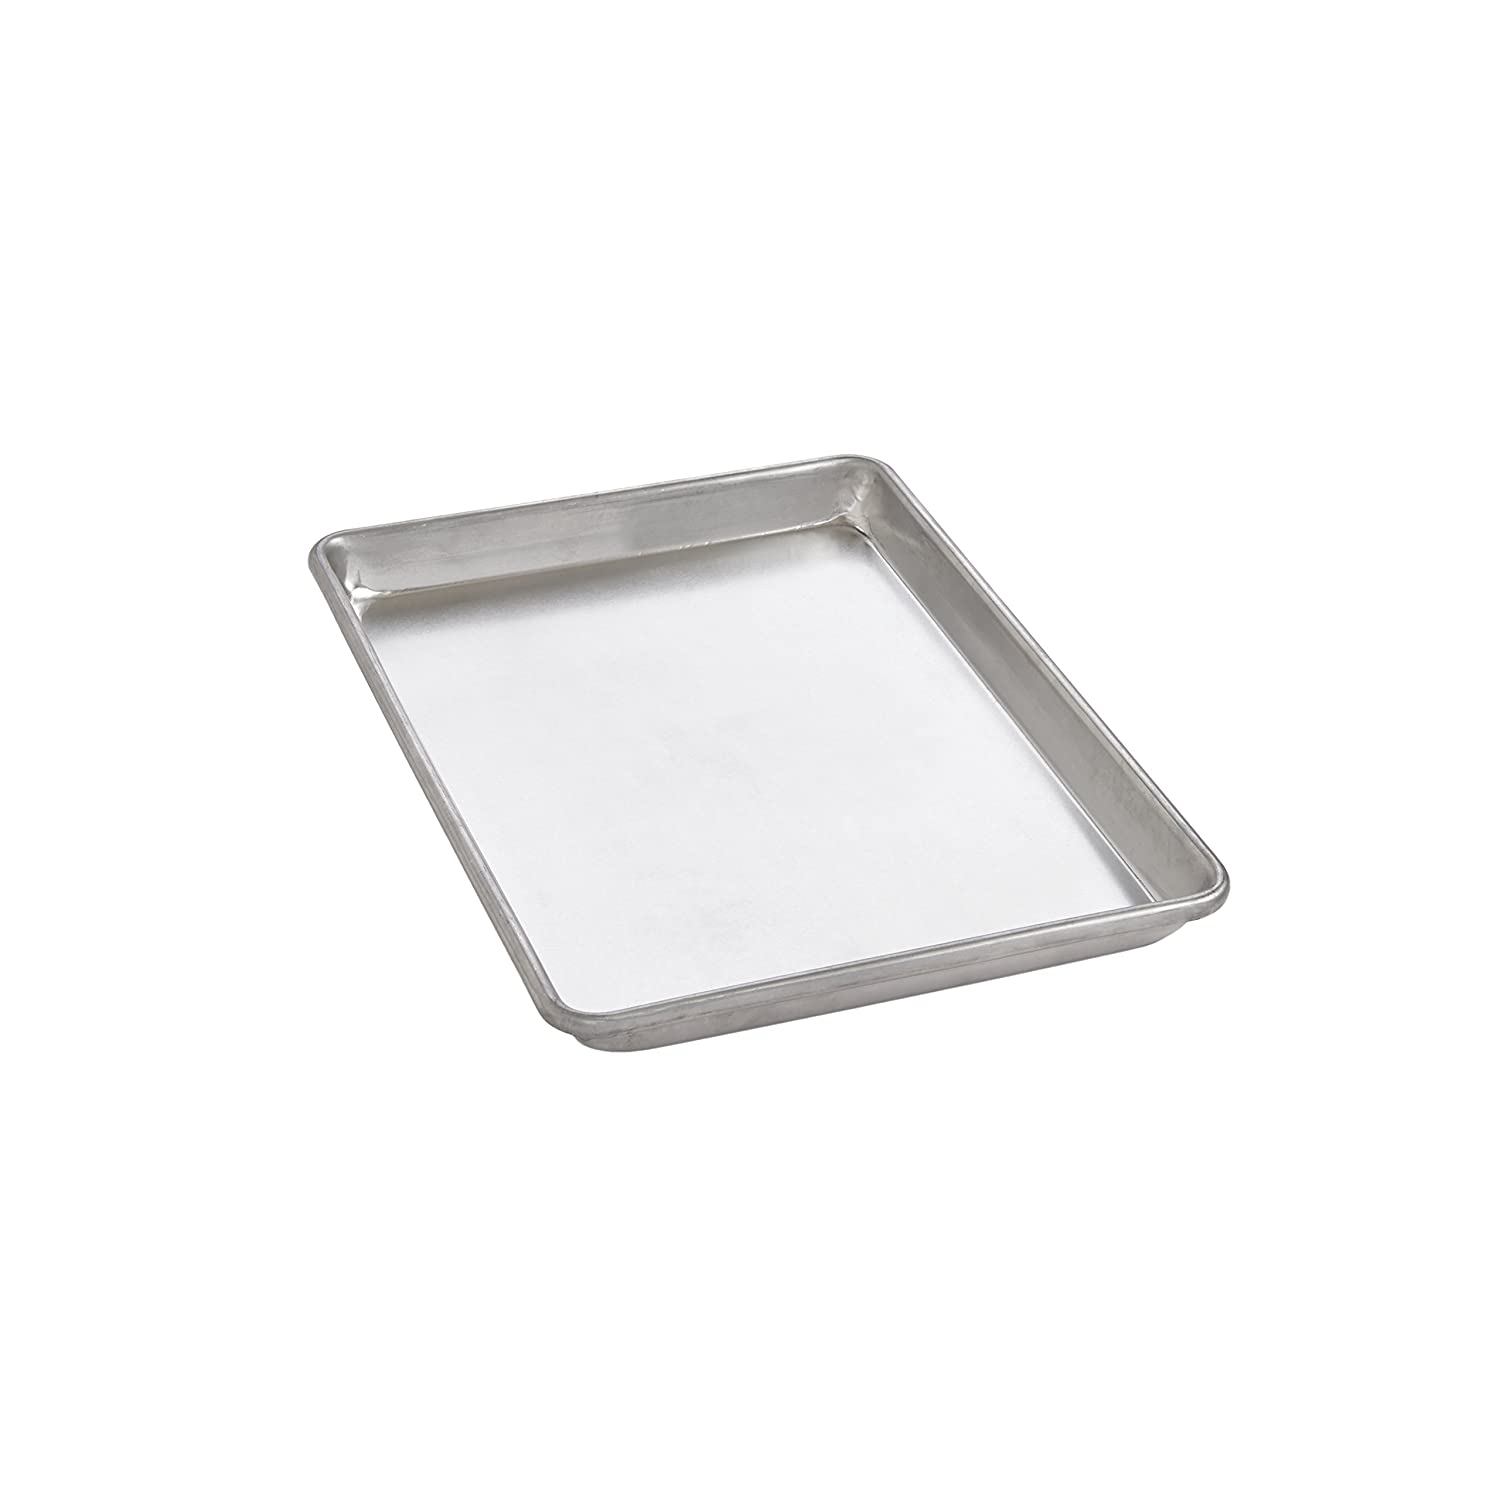 Anderson/'s Baking Heavyweight Quarter Sheet Baking Pan Commercial Grade 19-Gauge Aluminum Mrs 9.5-Inches x 13-Inches